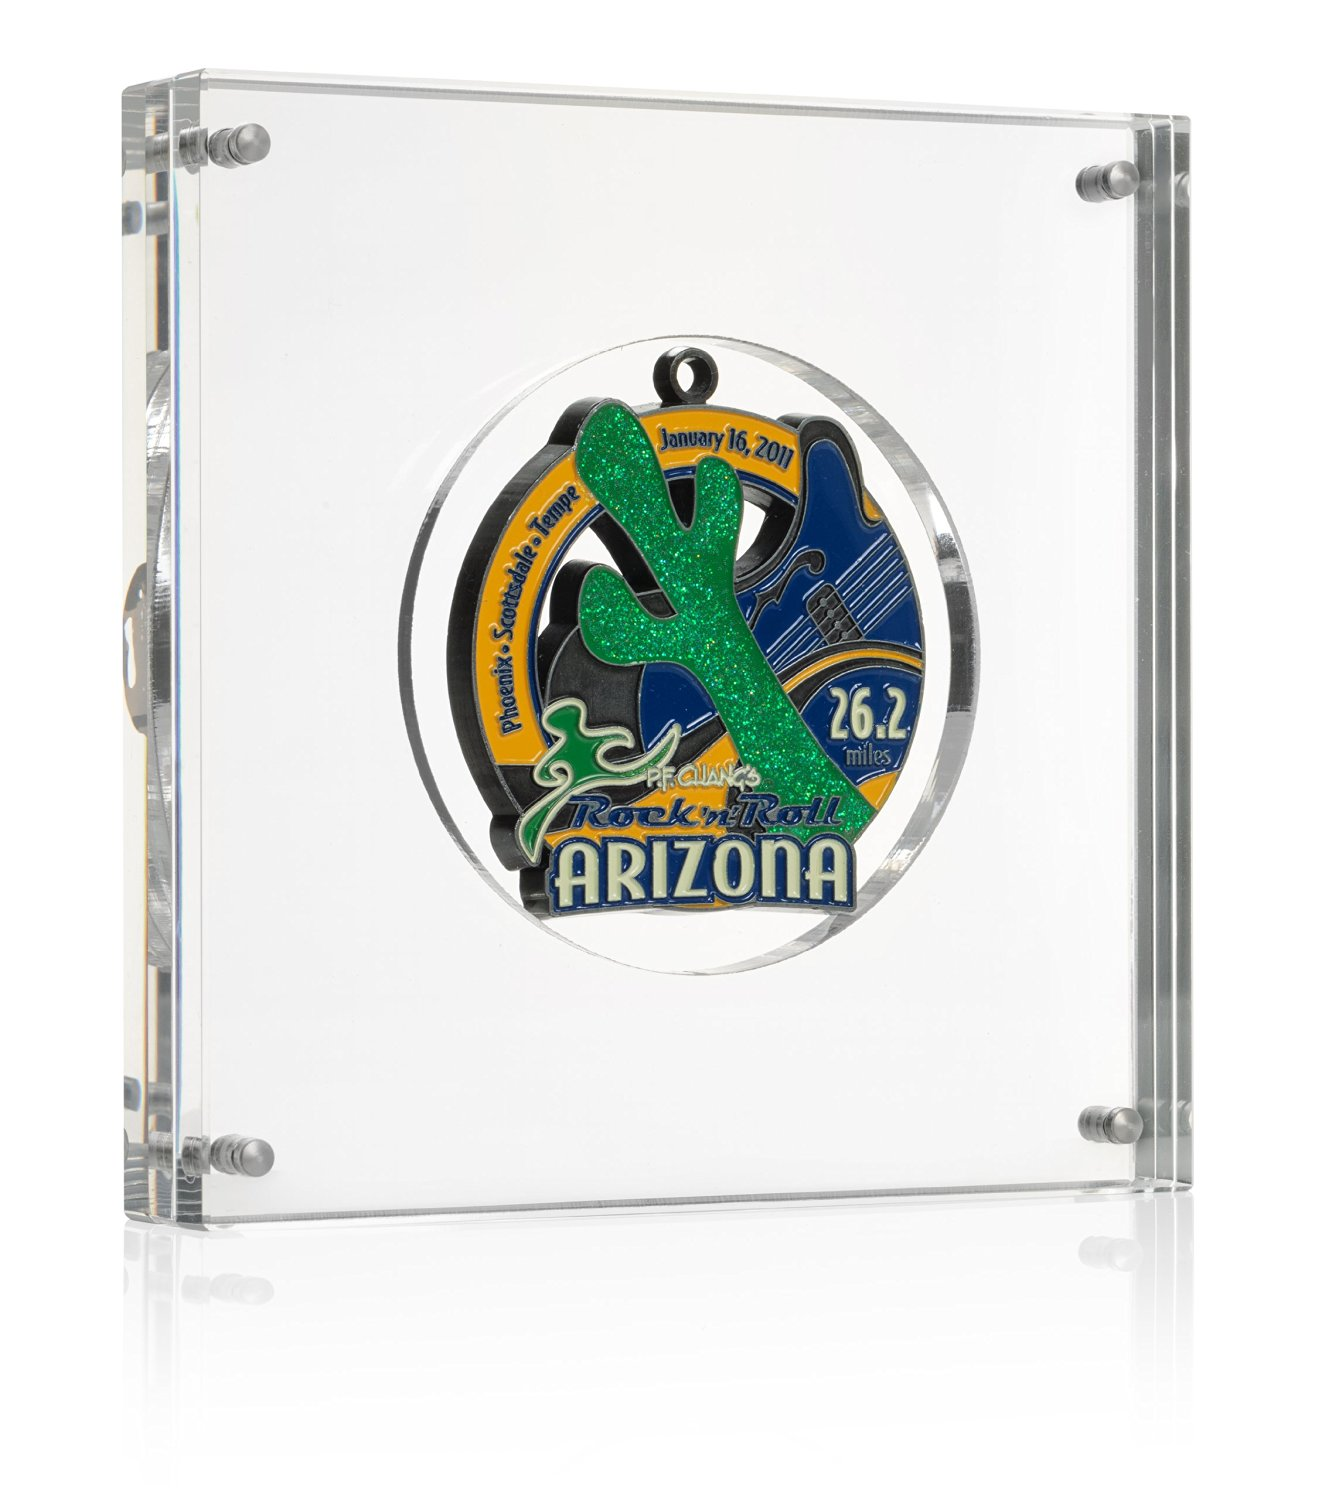 """Medal Display (Up to 3 1/3"""" Medals) - Large 6"""" Acrylic Self Standing Frame - Simple Setup"""